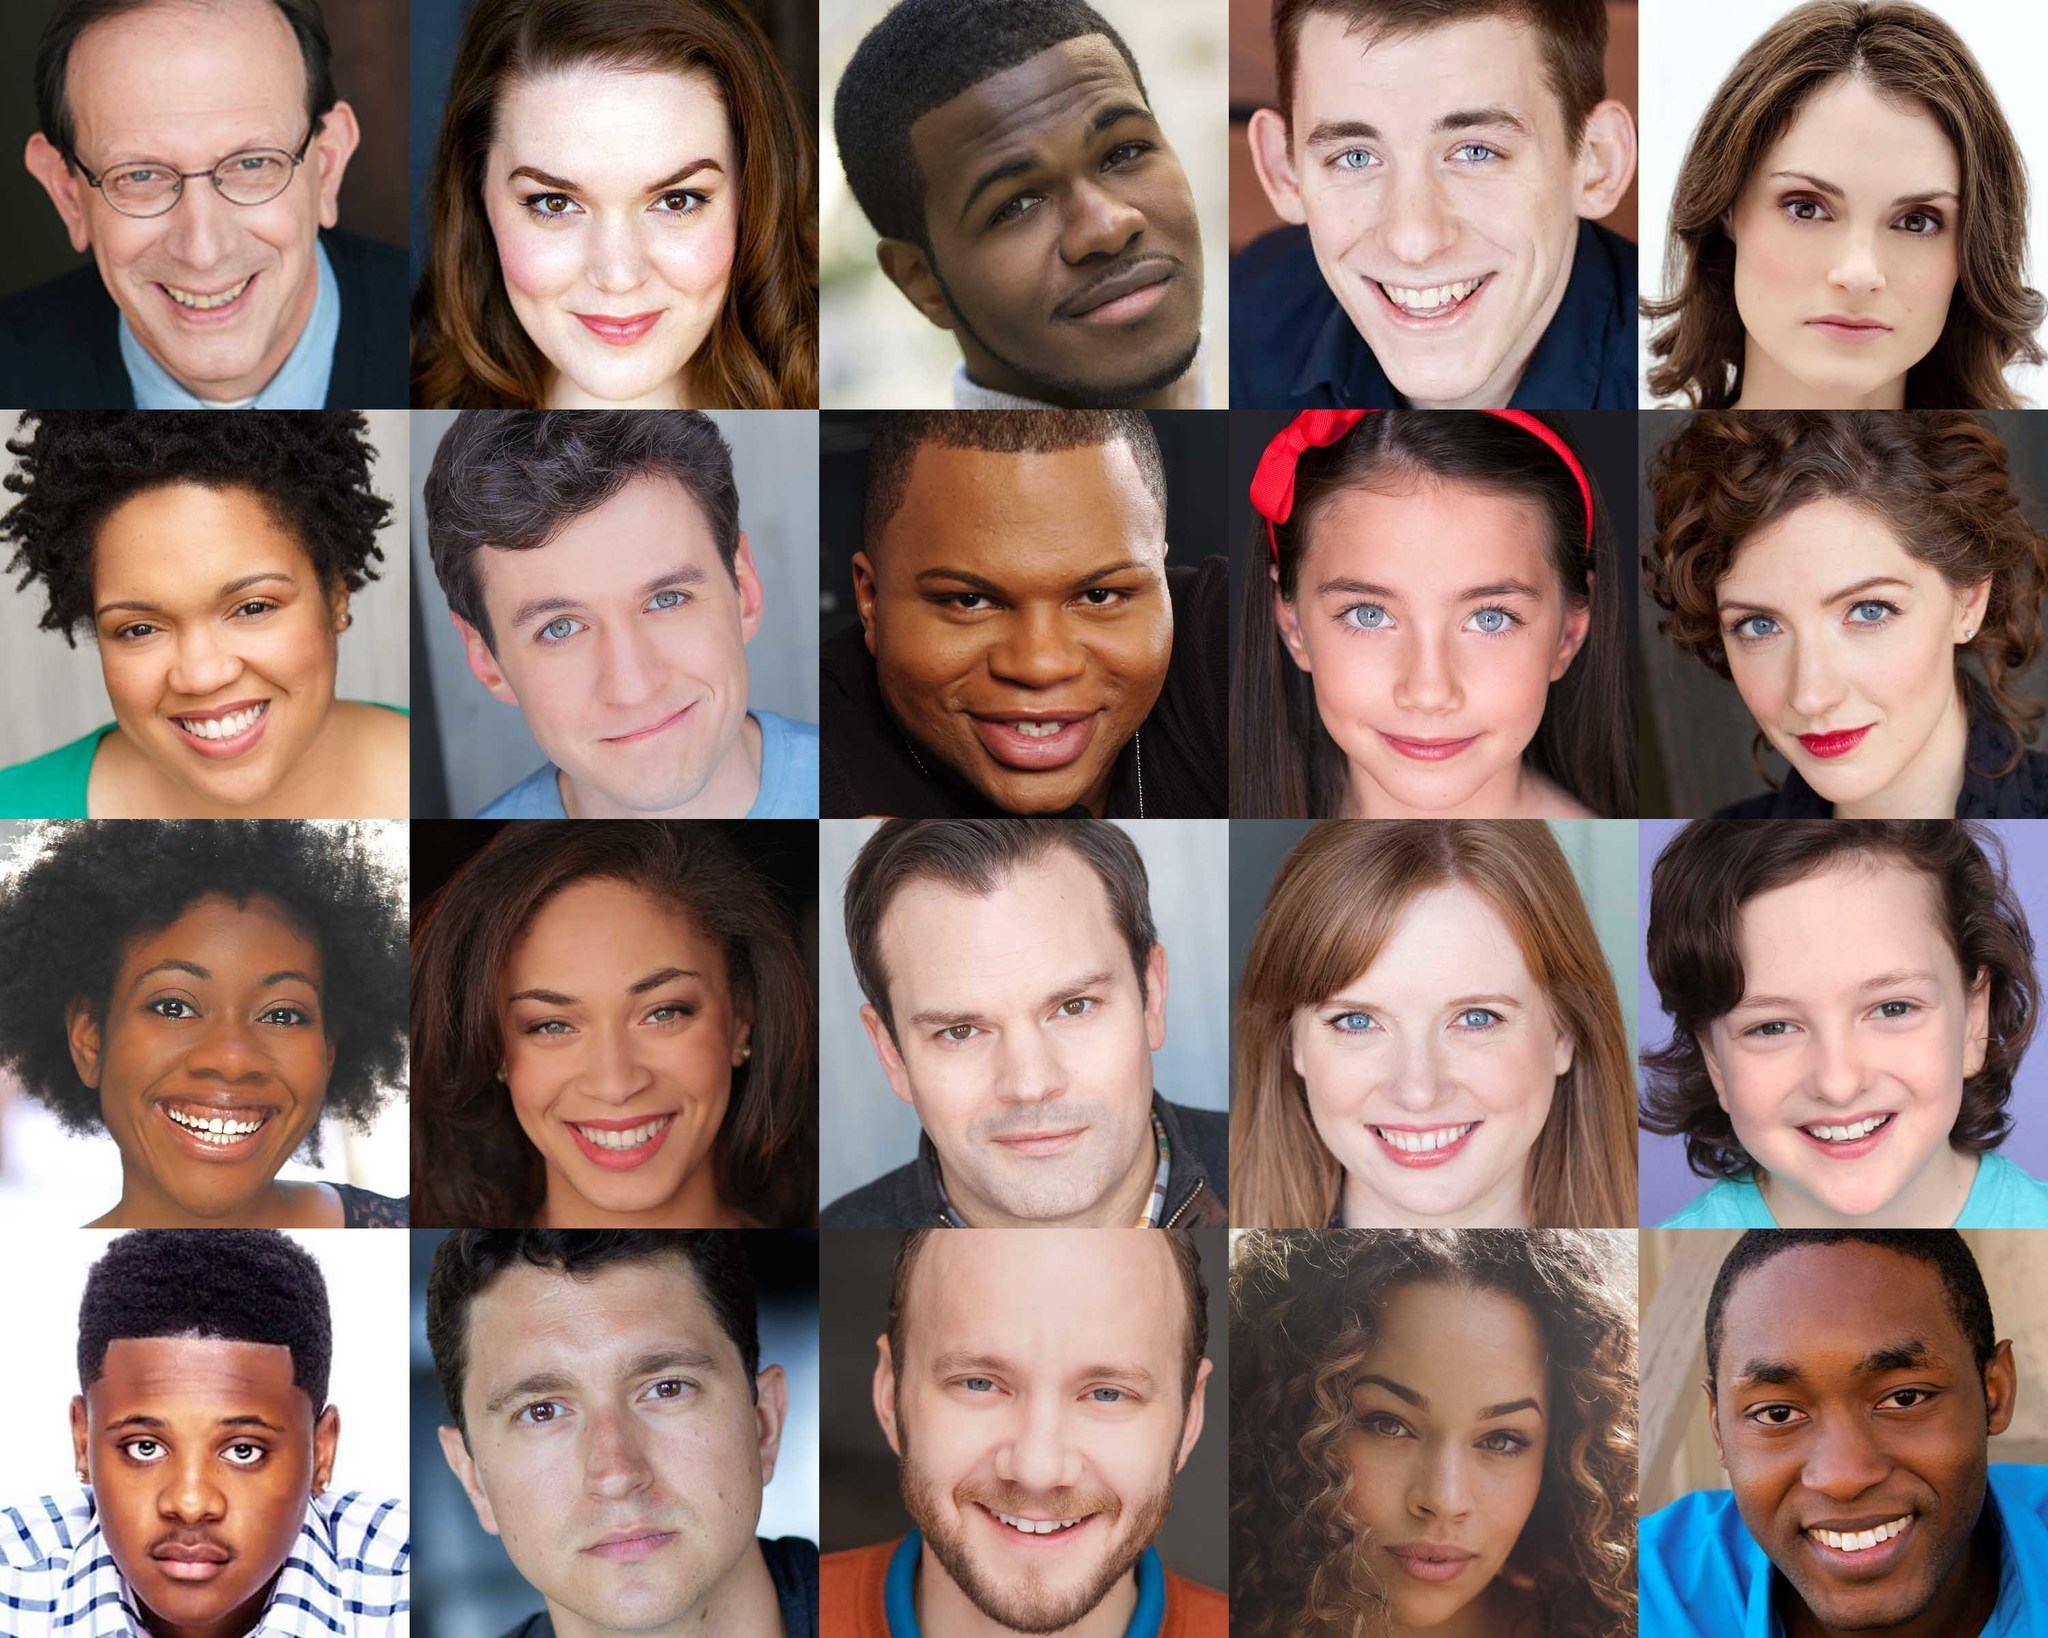 influence coalhouse walker characters and plot ragtime Coalhouse walker is the most essential character in ragtime, because he deeply affects the plot and all other characters coalhouse most deeply influences mother's younger brother, a young fundamentalist with little objective in life.